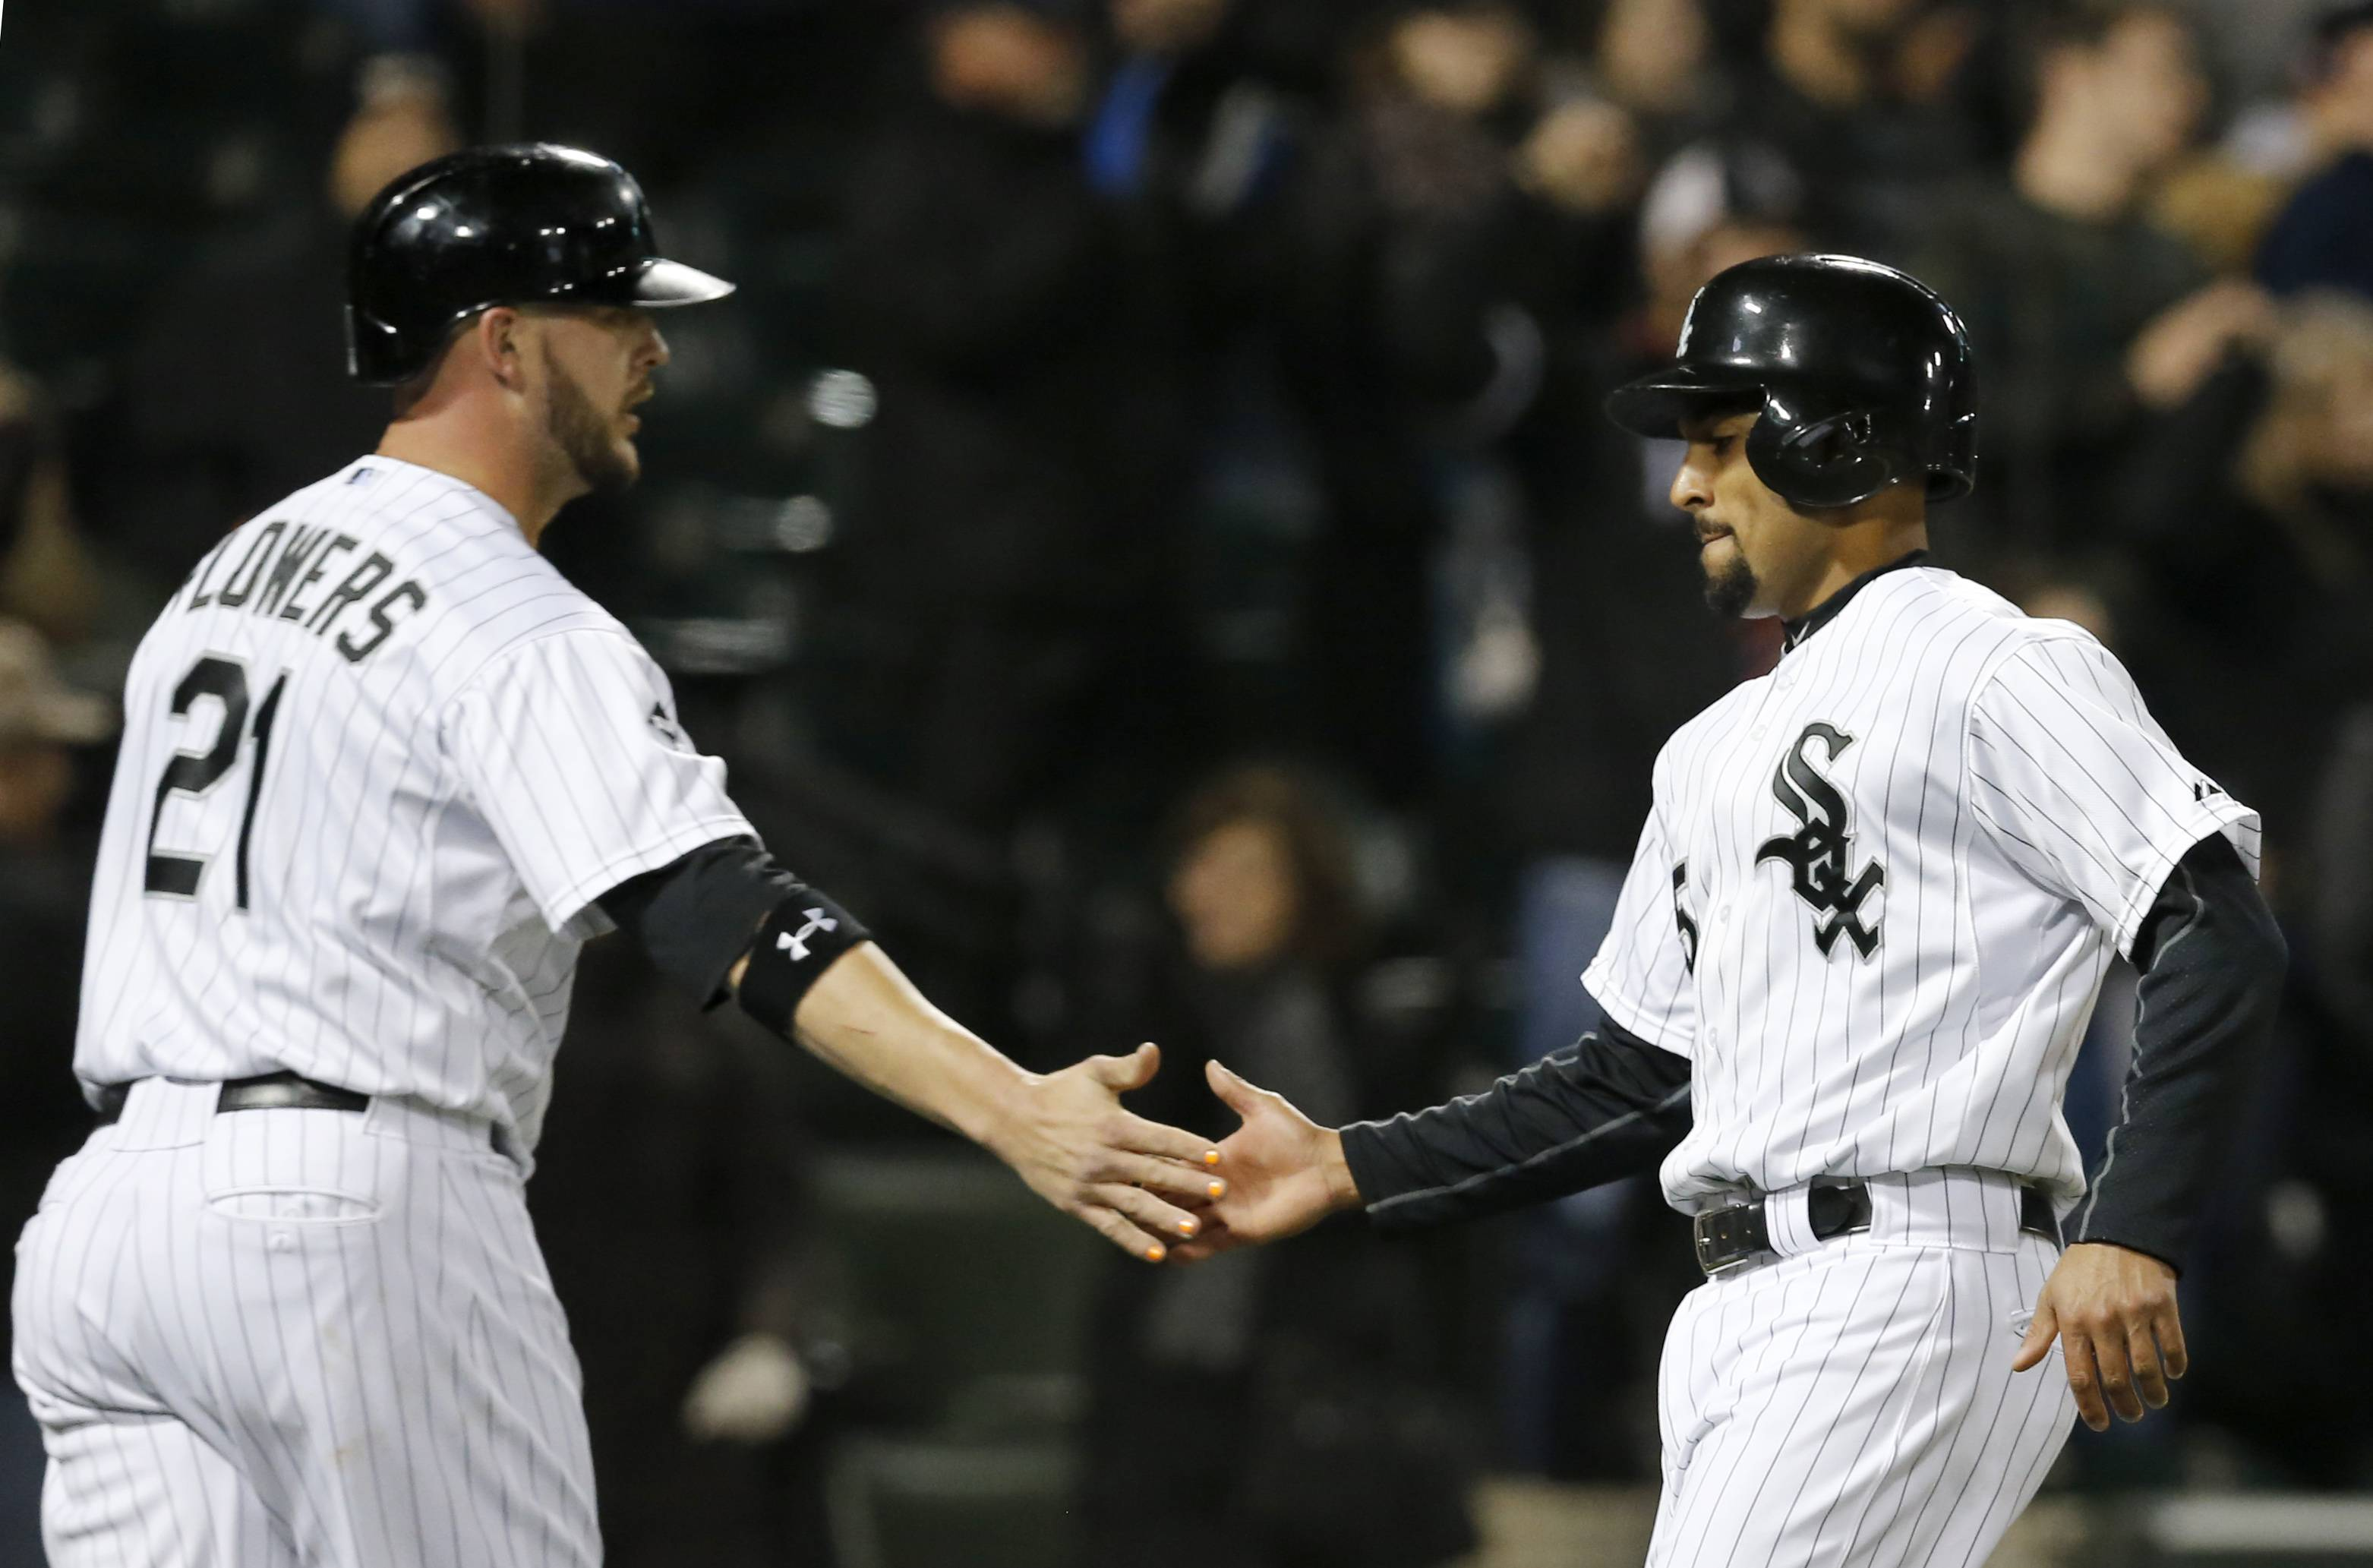 Chicago White Sox's Tyler Flowers, left, and Marcus Semien celebrate after scoring off a double by Adam Eaton, on a pitch by Tampa Bay Rays relief pitcher Jake McGee, during the sixth inning of a baseball game Monday in Chicago.